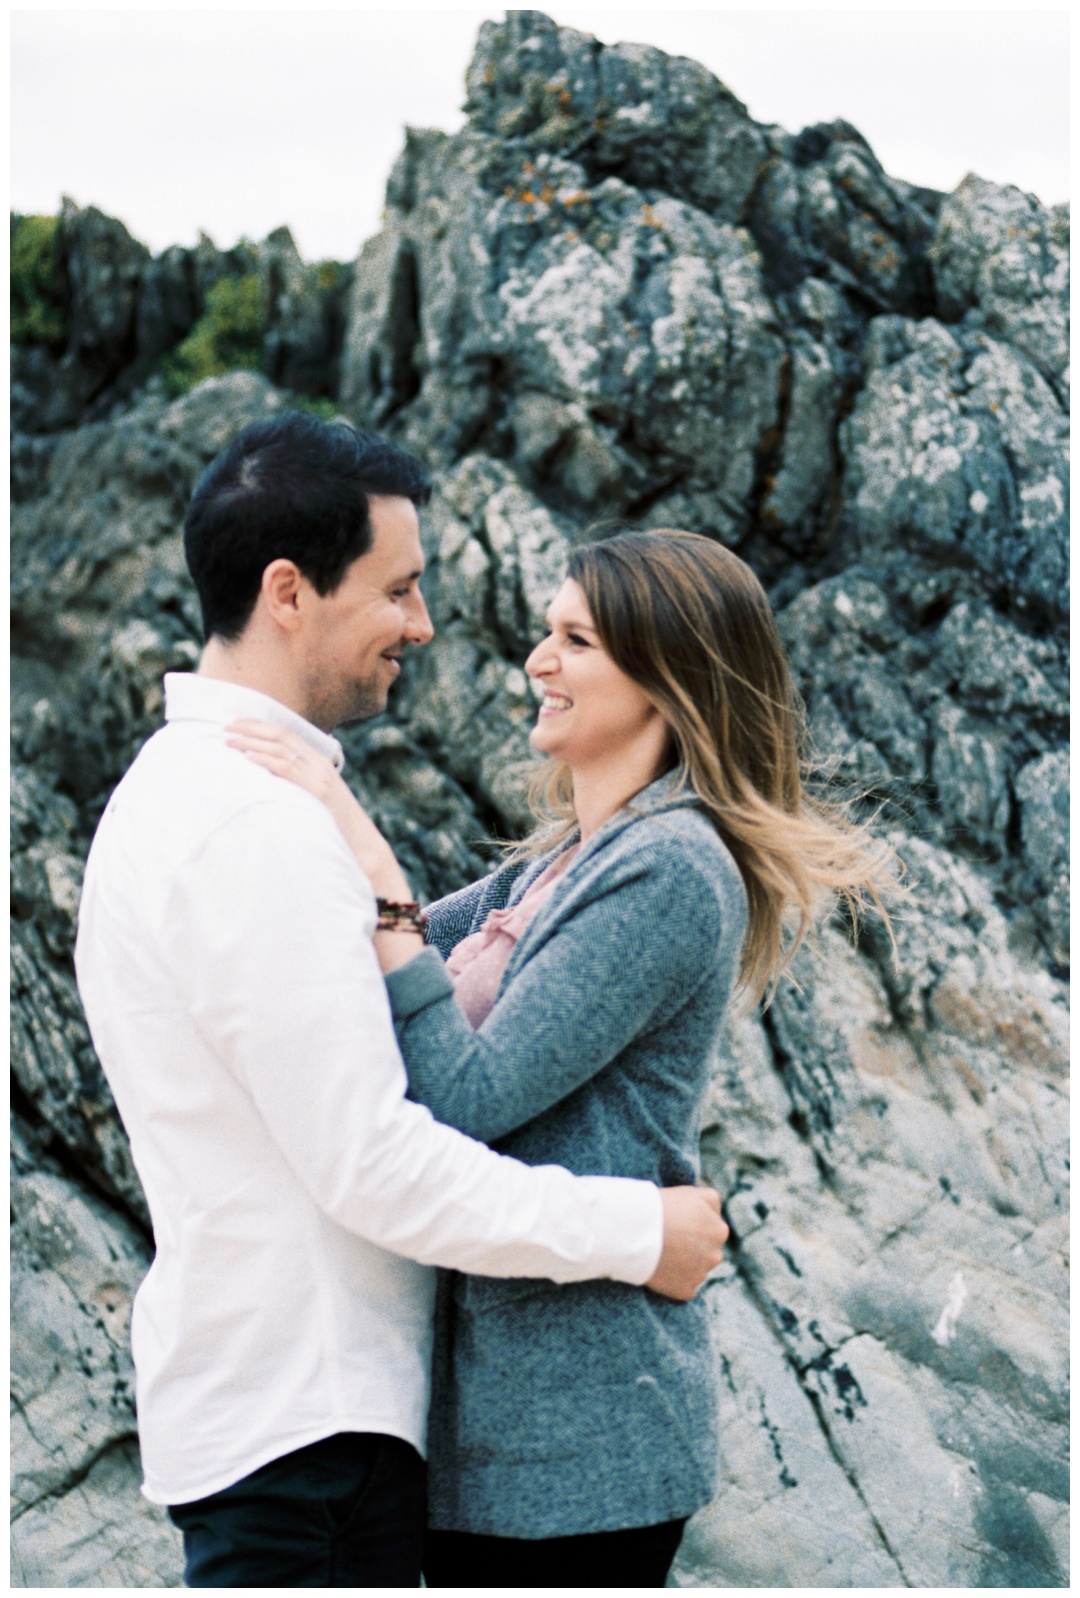 We_Can _Be_Heroes_alternative_wedding_photographer_Kinnagoe_bay_Donegal_film_photogrpahy_0020